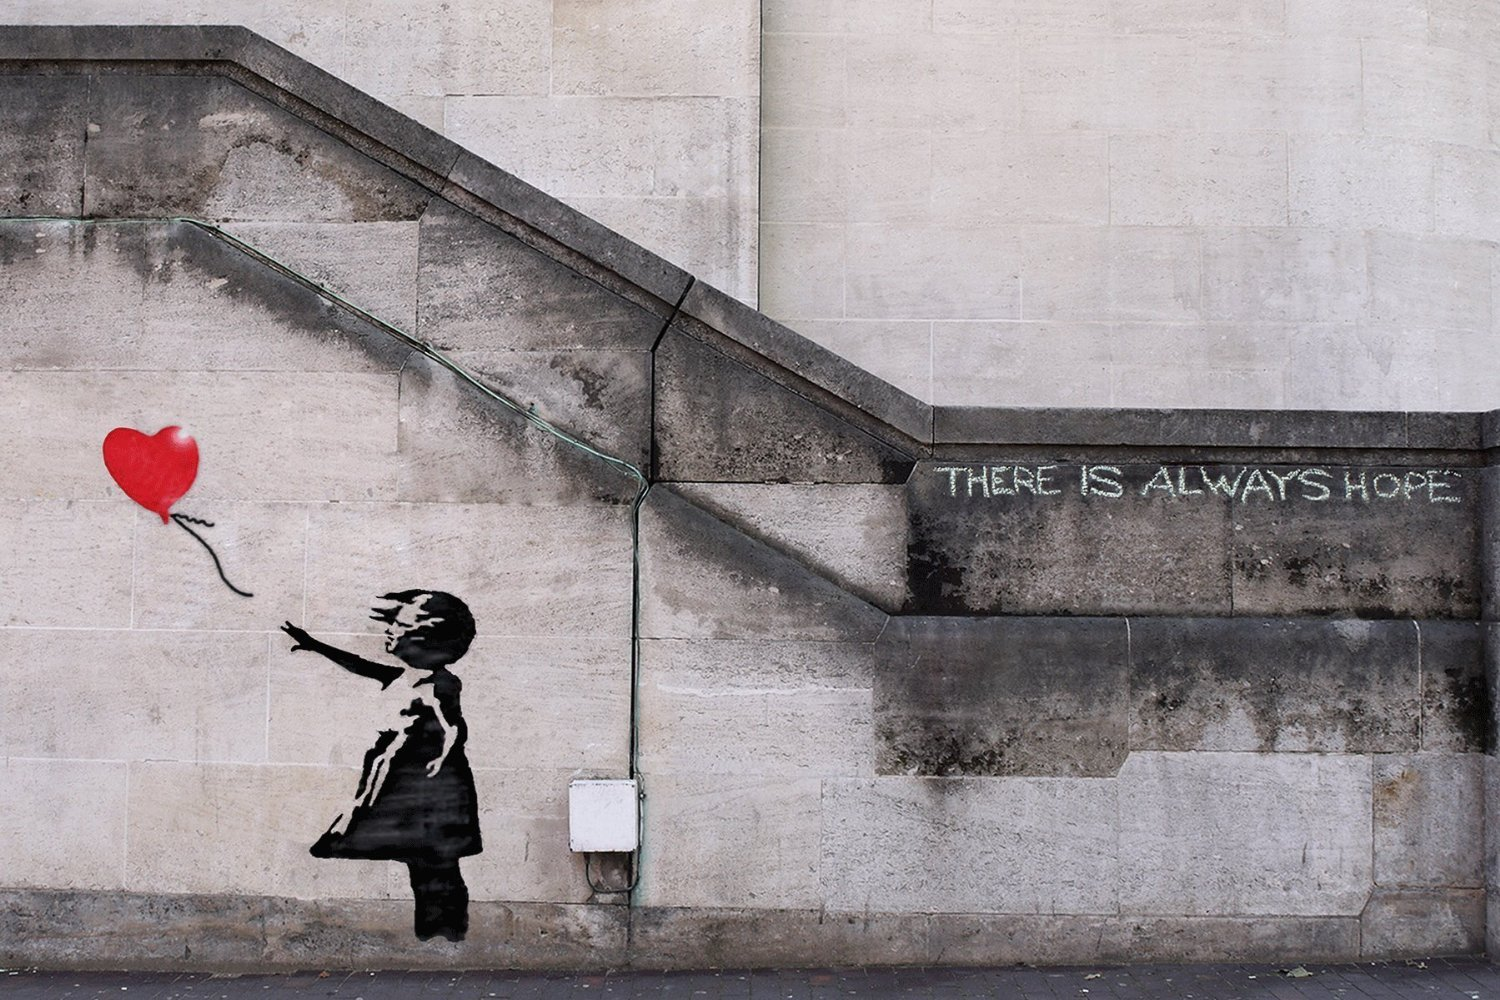 Banksy Sotheby Arte Strategia Di Marketing Collater Behind The Artwork And Sothebys Art Move